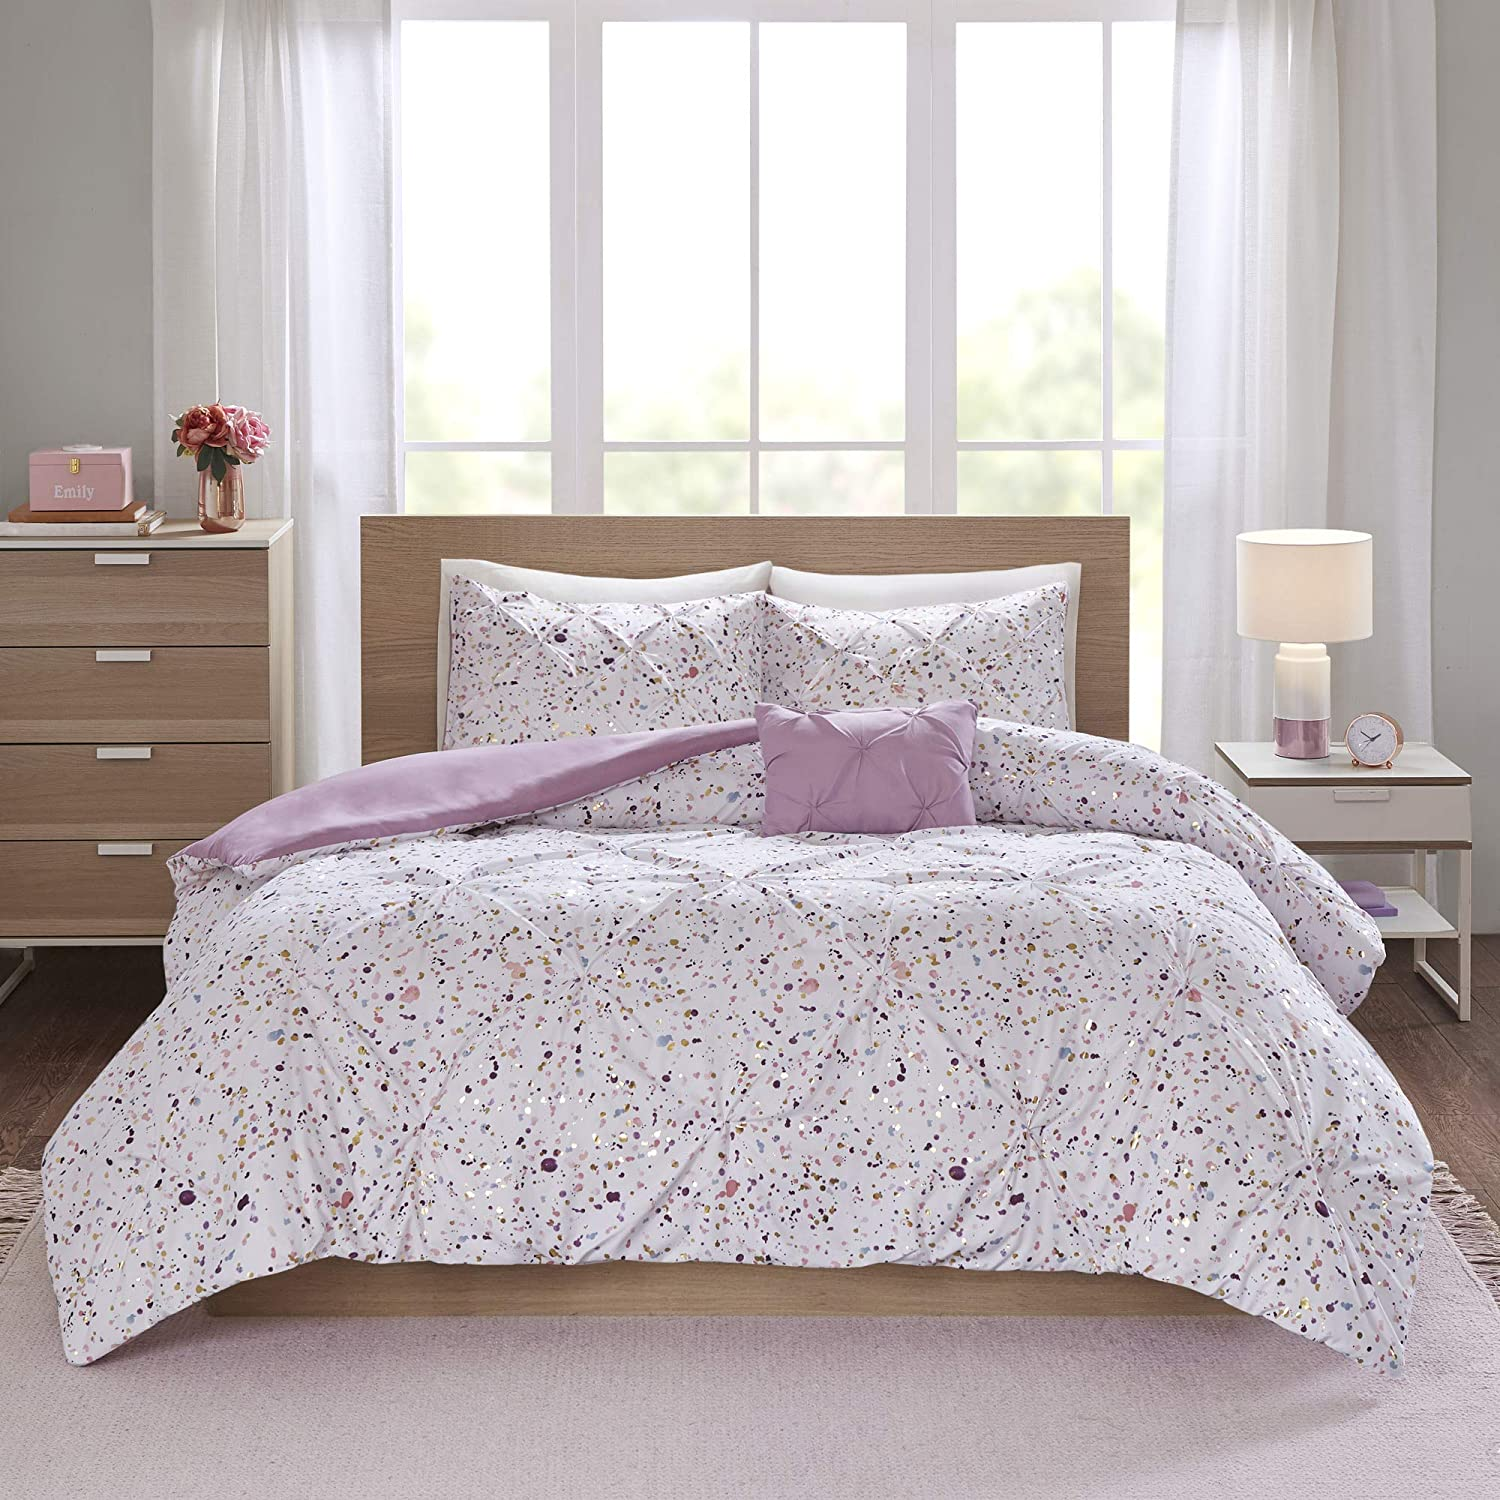 Intelligent Design Abby Metallic Printed and Super beauty product restock quality top! Max 53% OFF Cov Pintucked Duvet